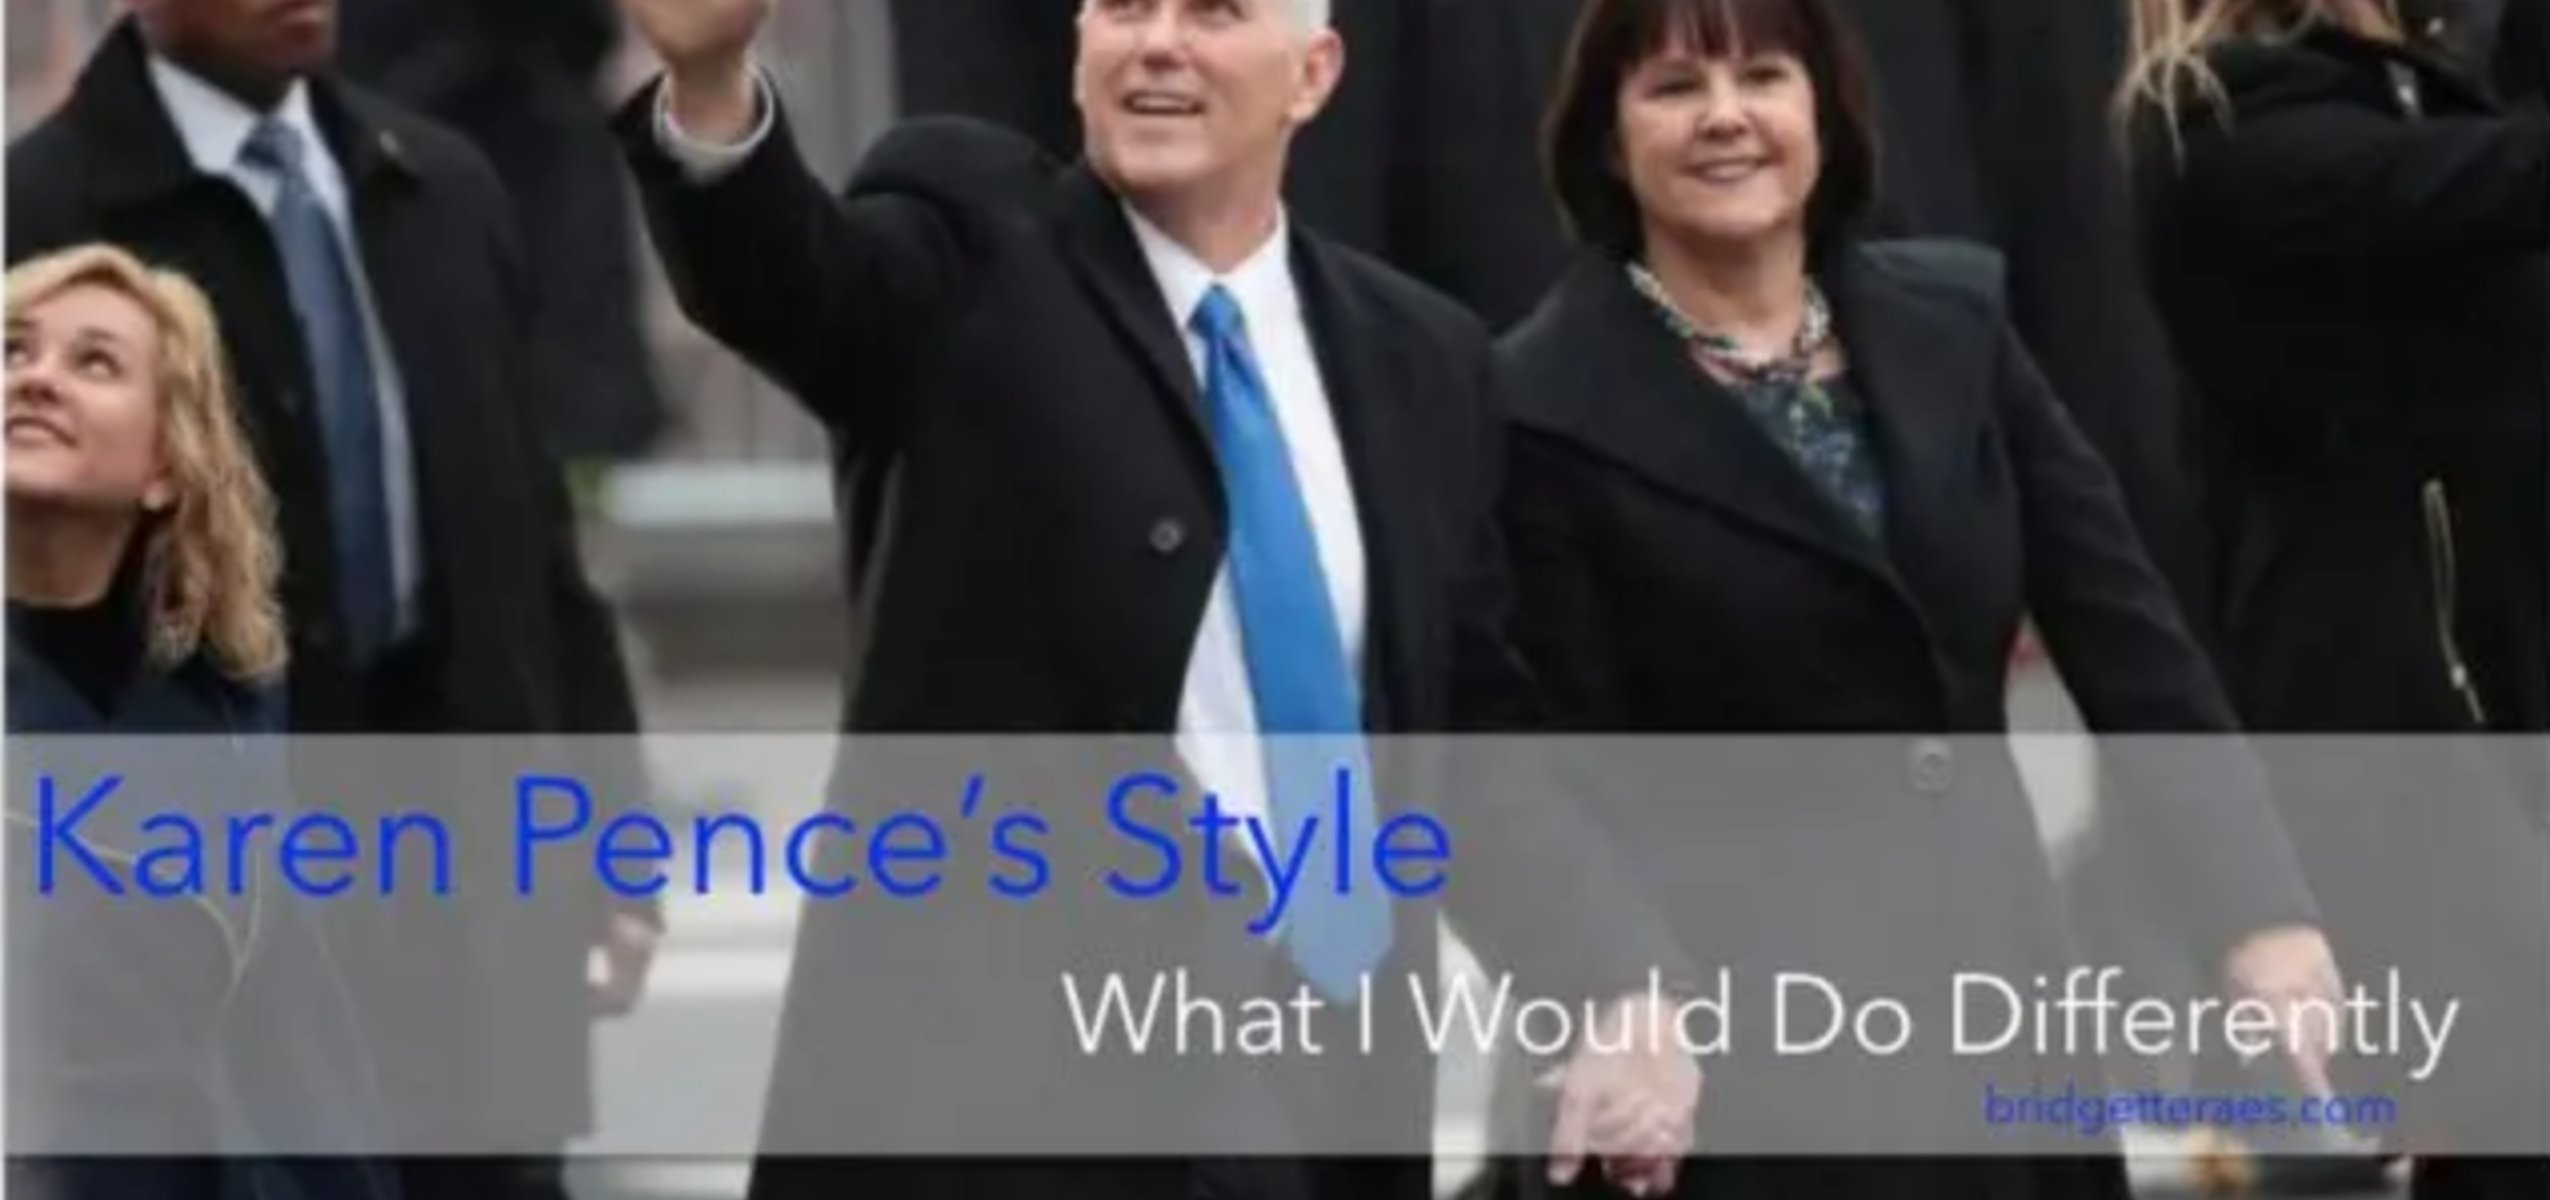 Karen Pence S Style What I Would Do Differently Bridgette Raes Style Expert